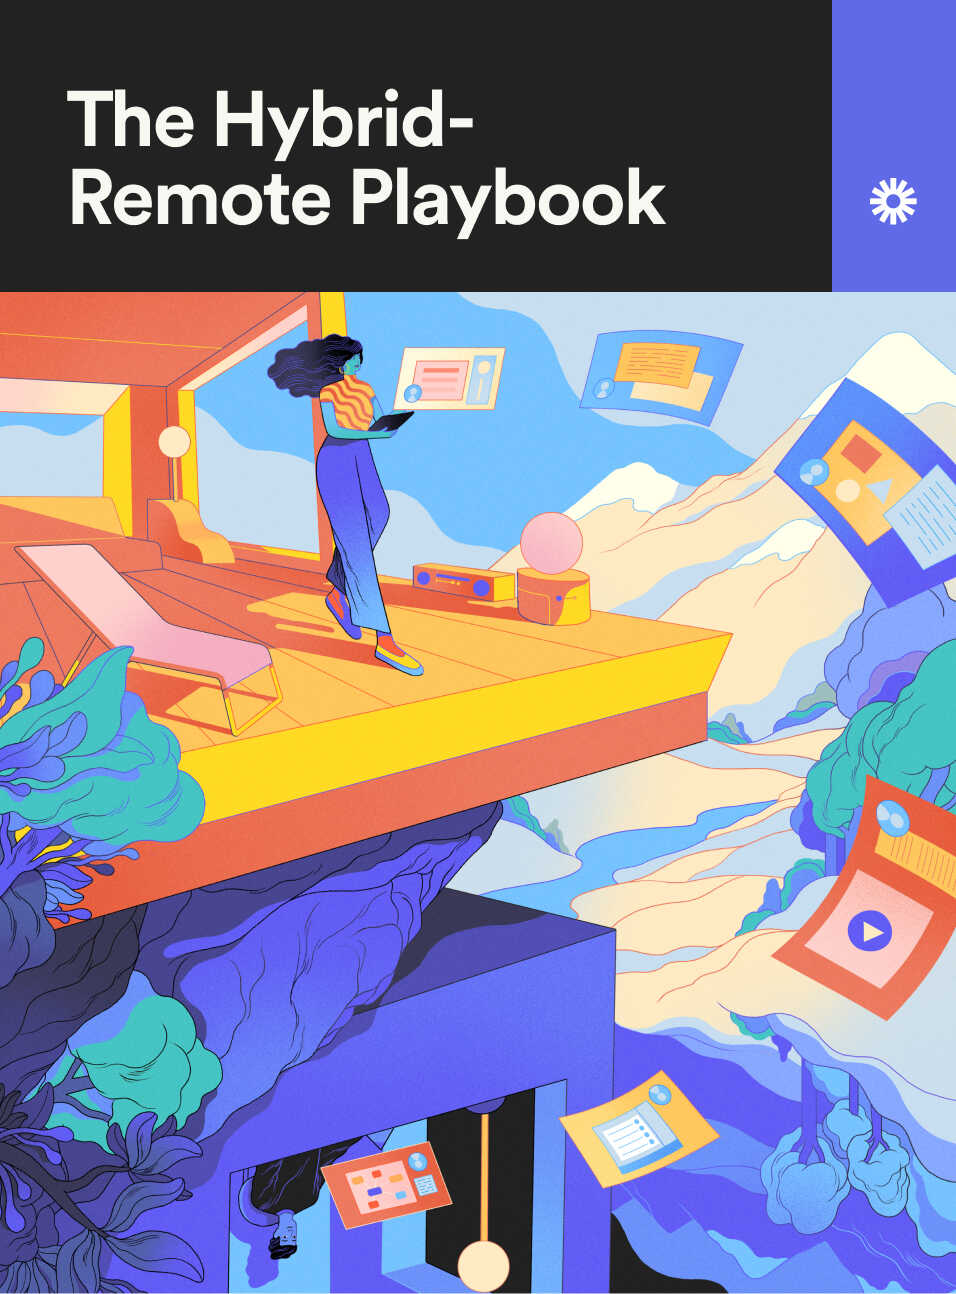 The Hybrid-Remote Playbook eBook Cover, with illustration of person holding a laptop in a modern building, with windows flying around them.